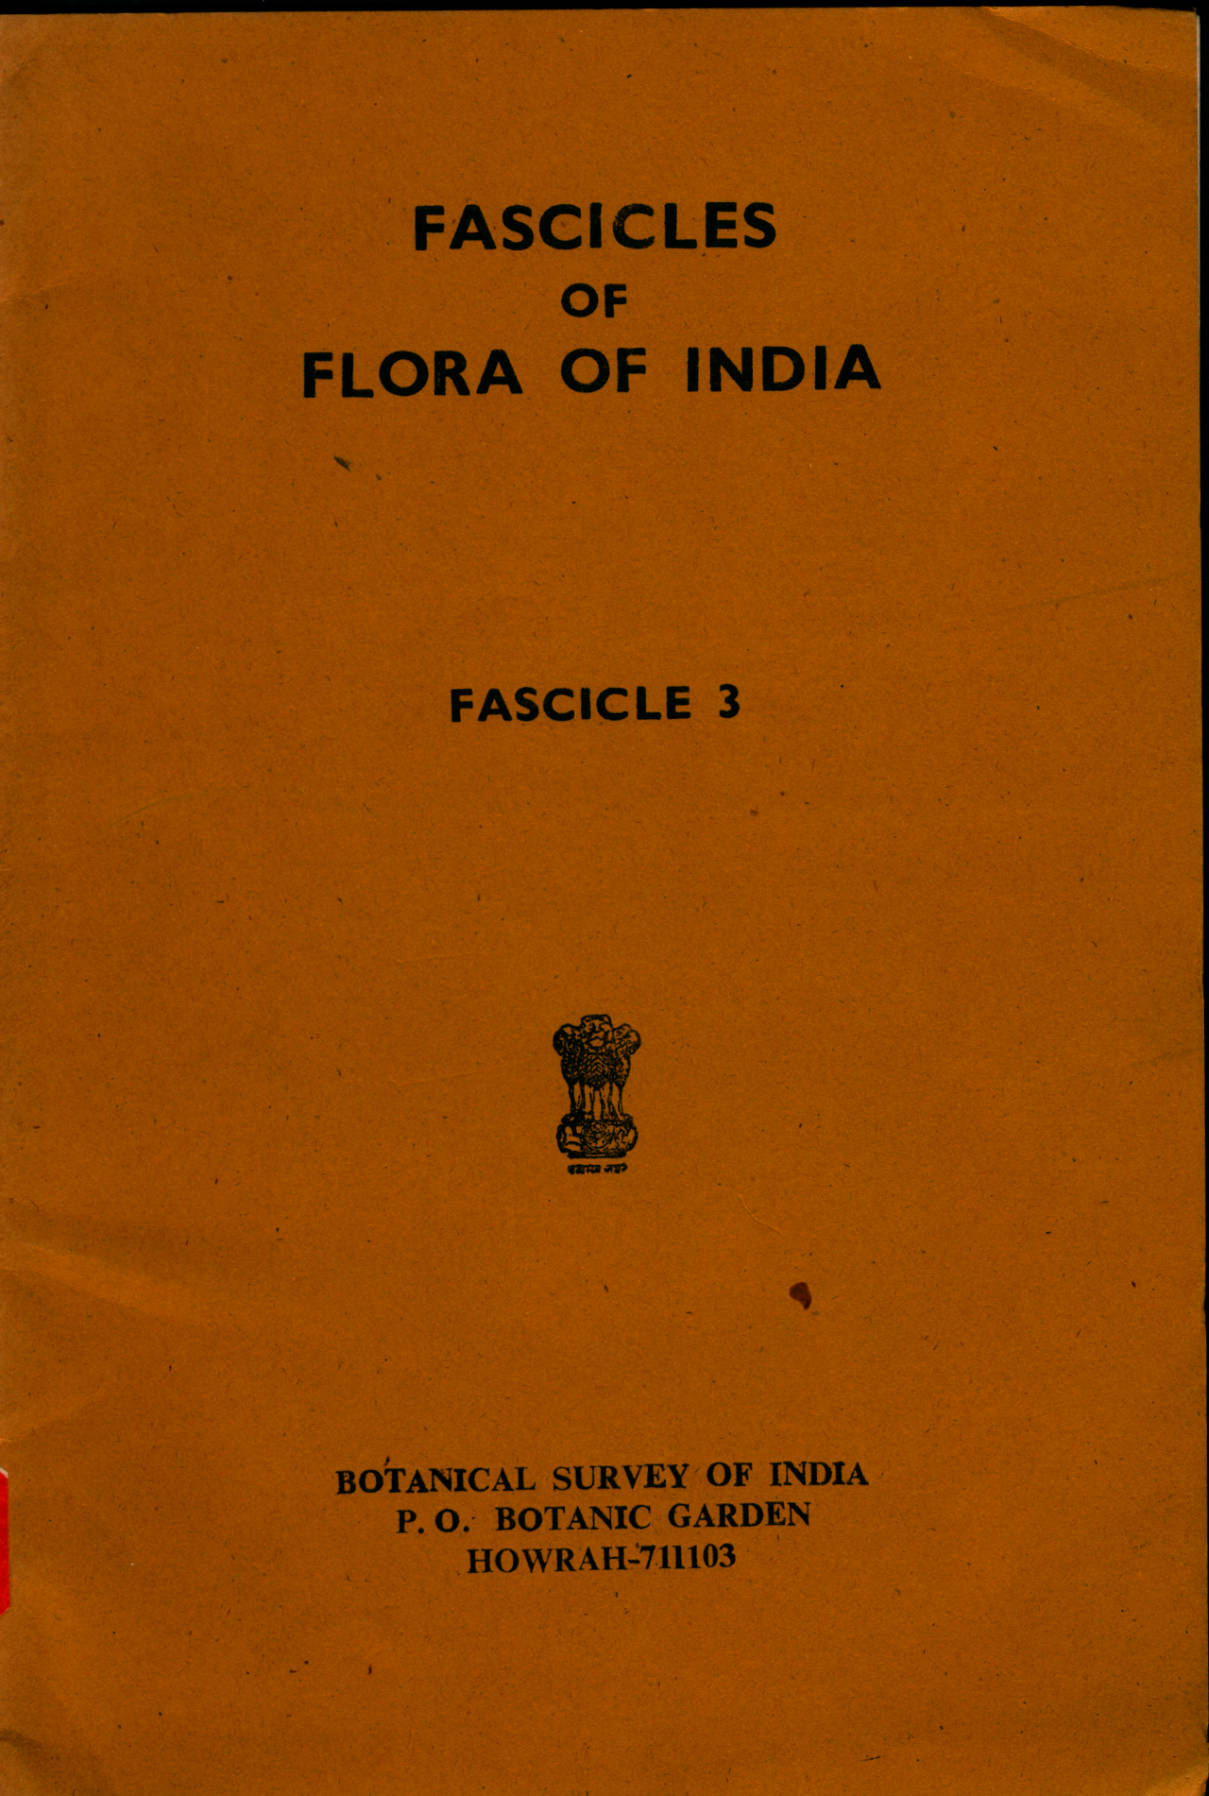 FASCICLES OF FLORA OF INDIA FASCICLE 3